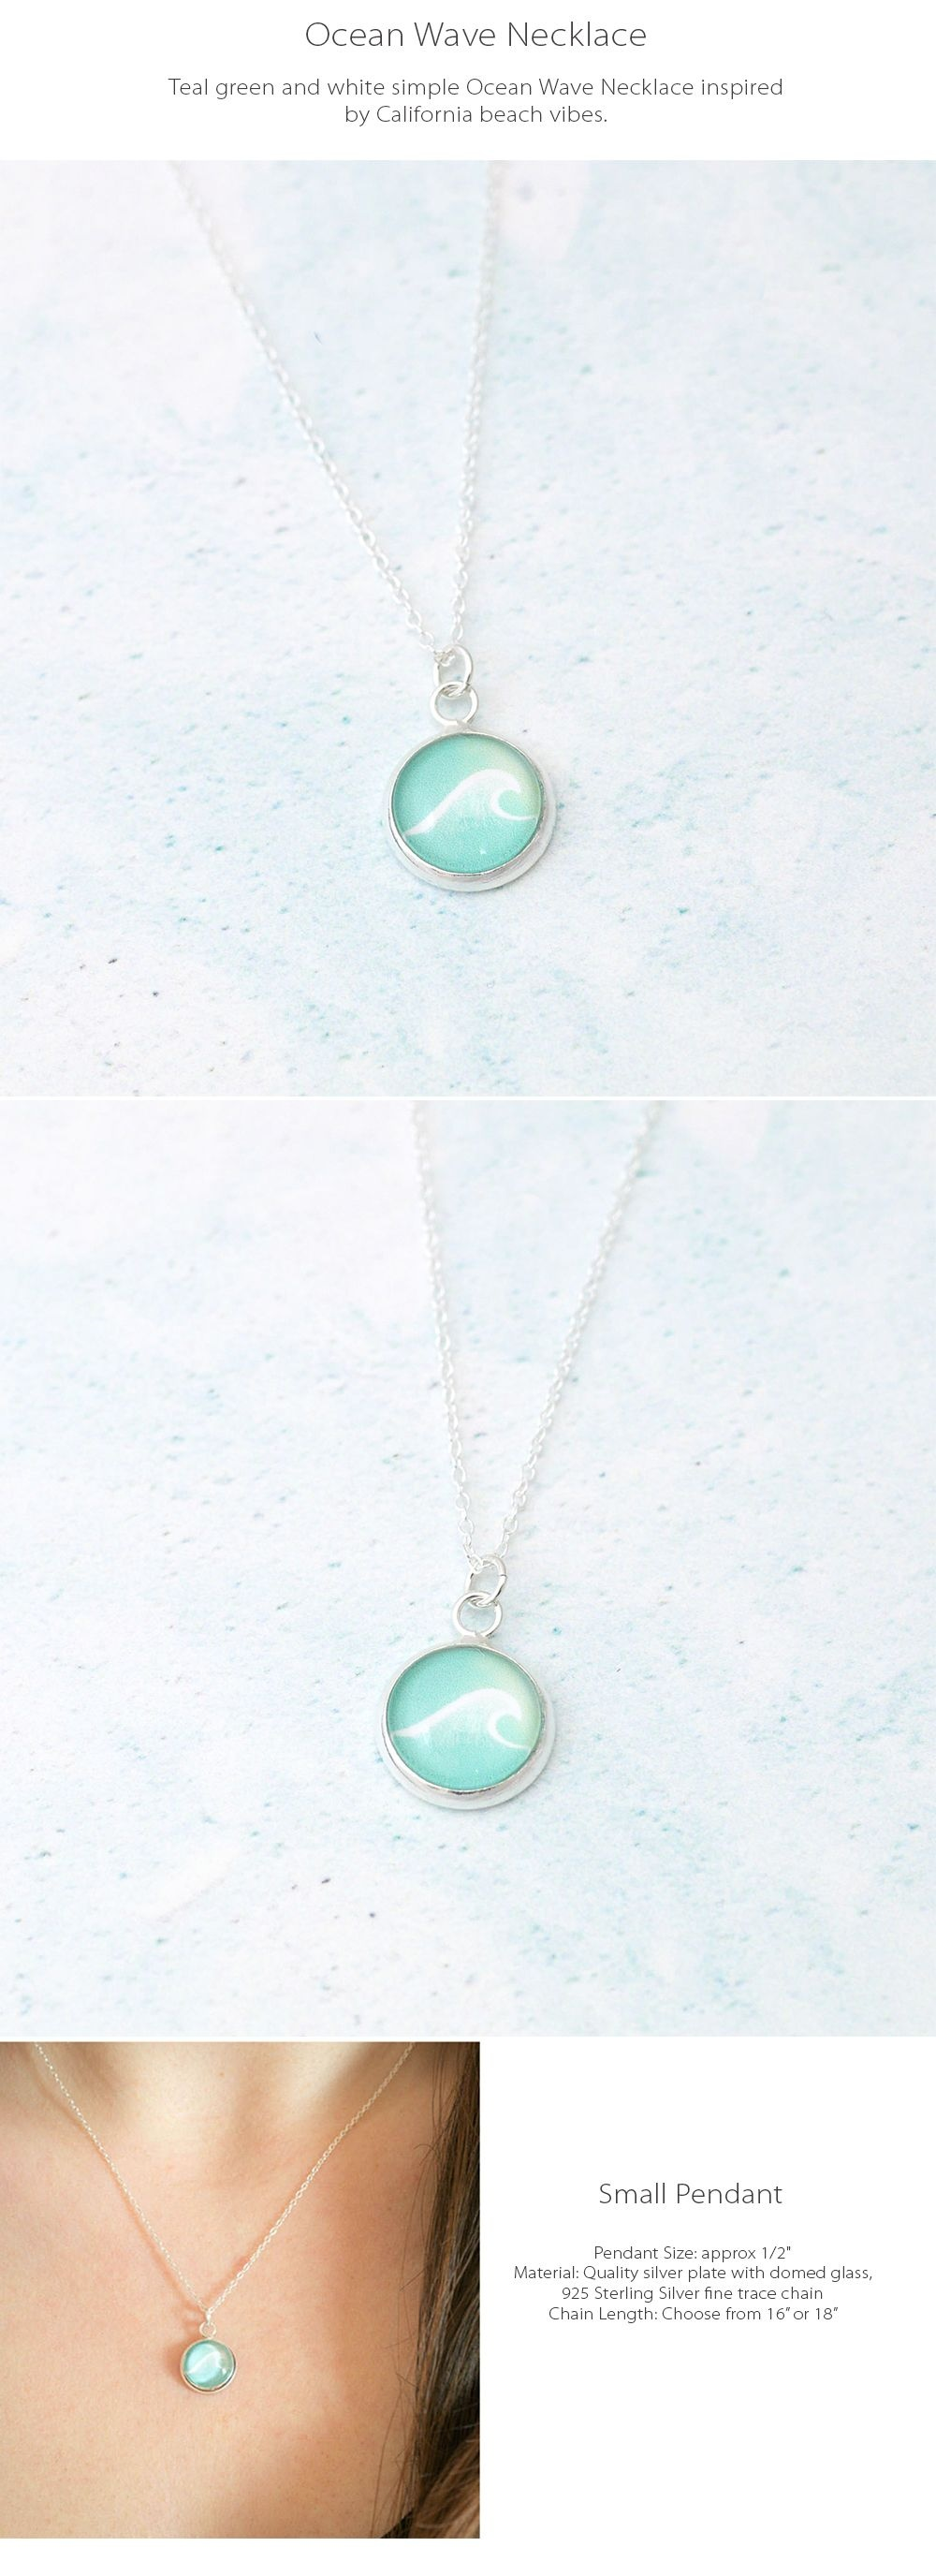 Ocean Wave Necklace Inspired by California Beach Vibes